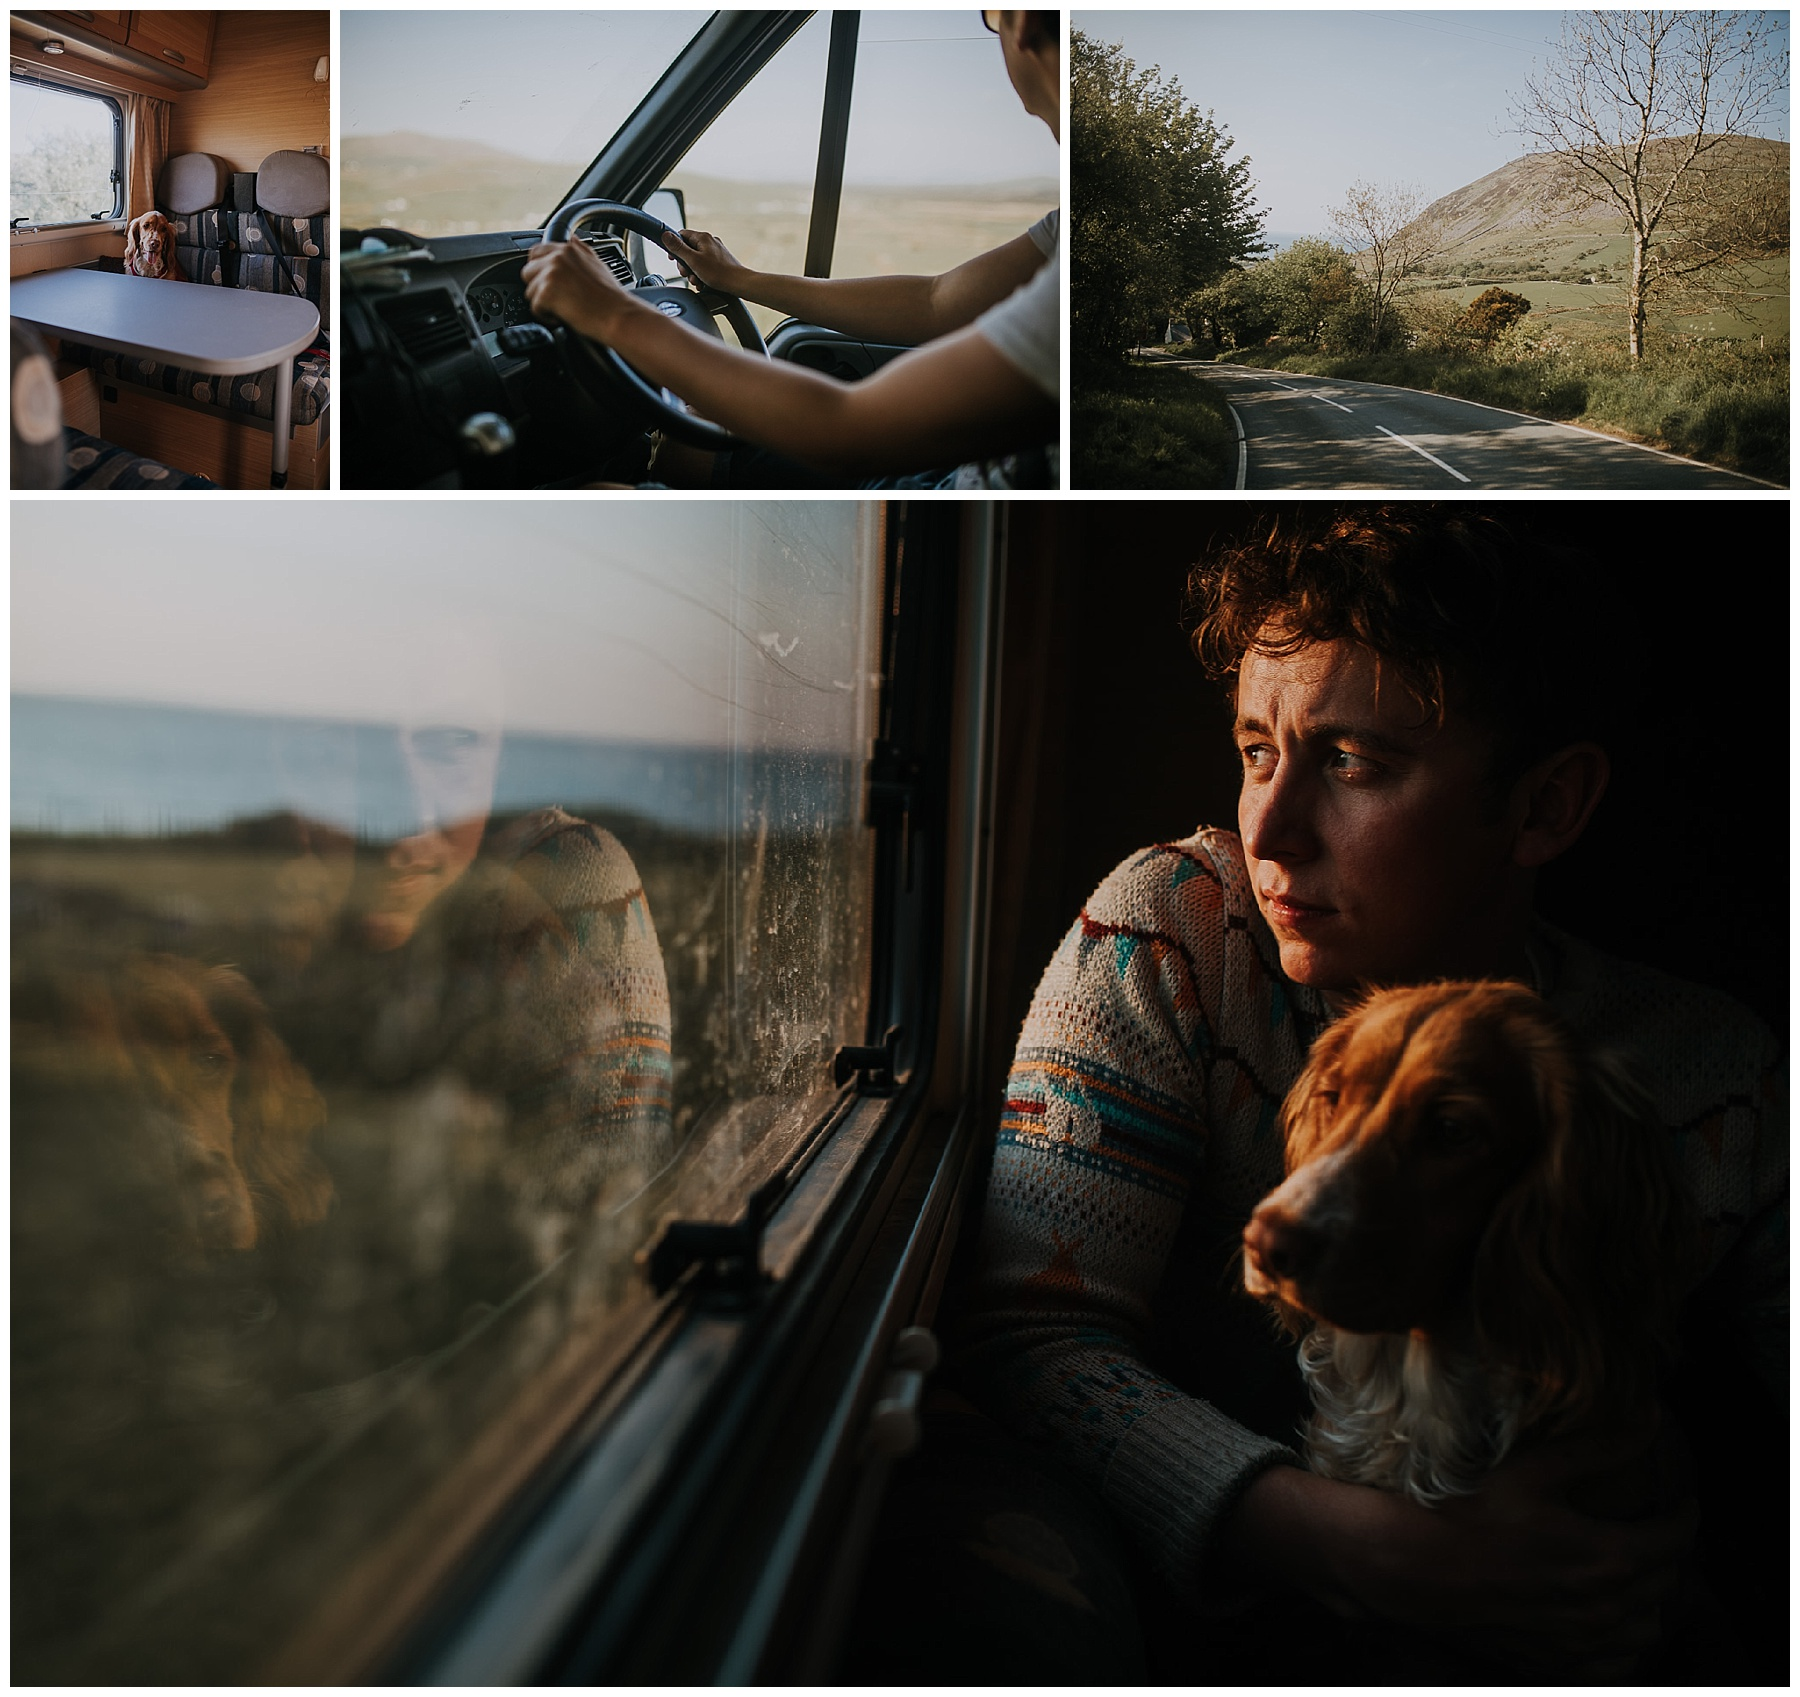 a man looks out a camper window